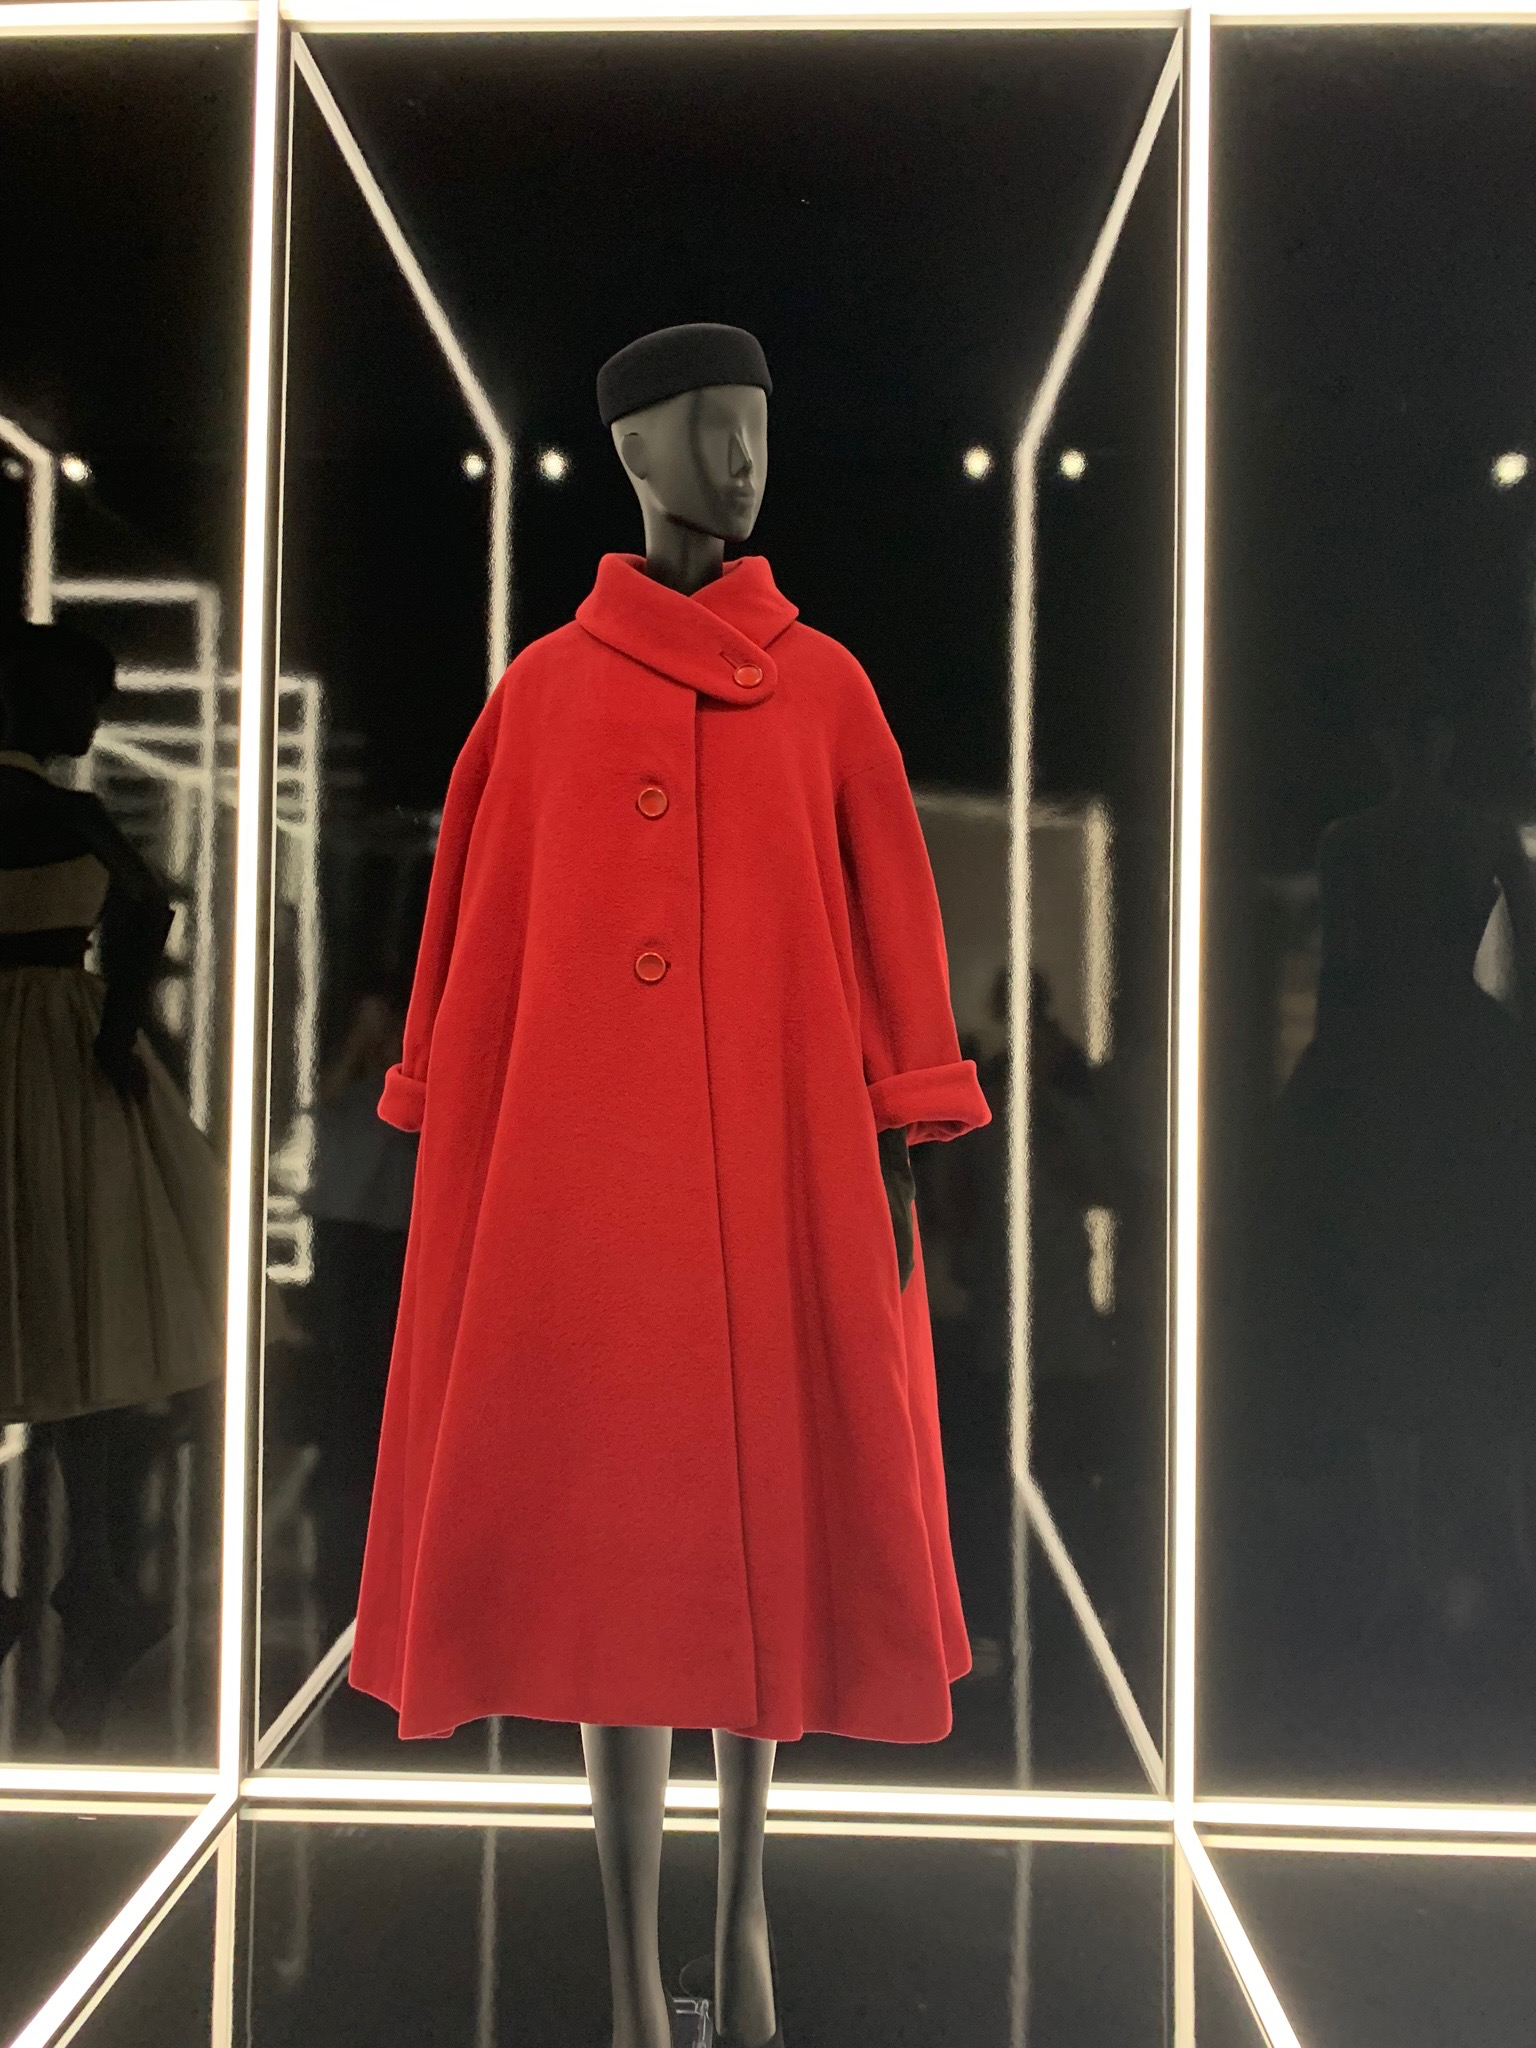 The red Dior coat.jpg